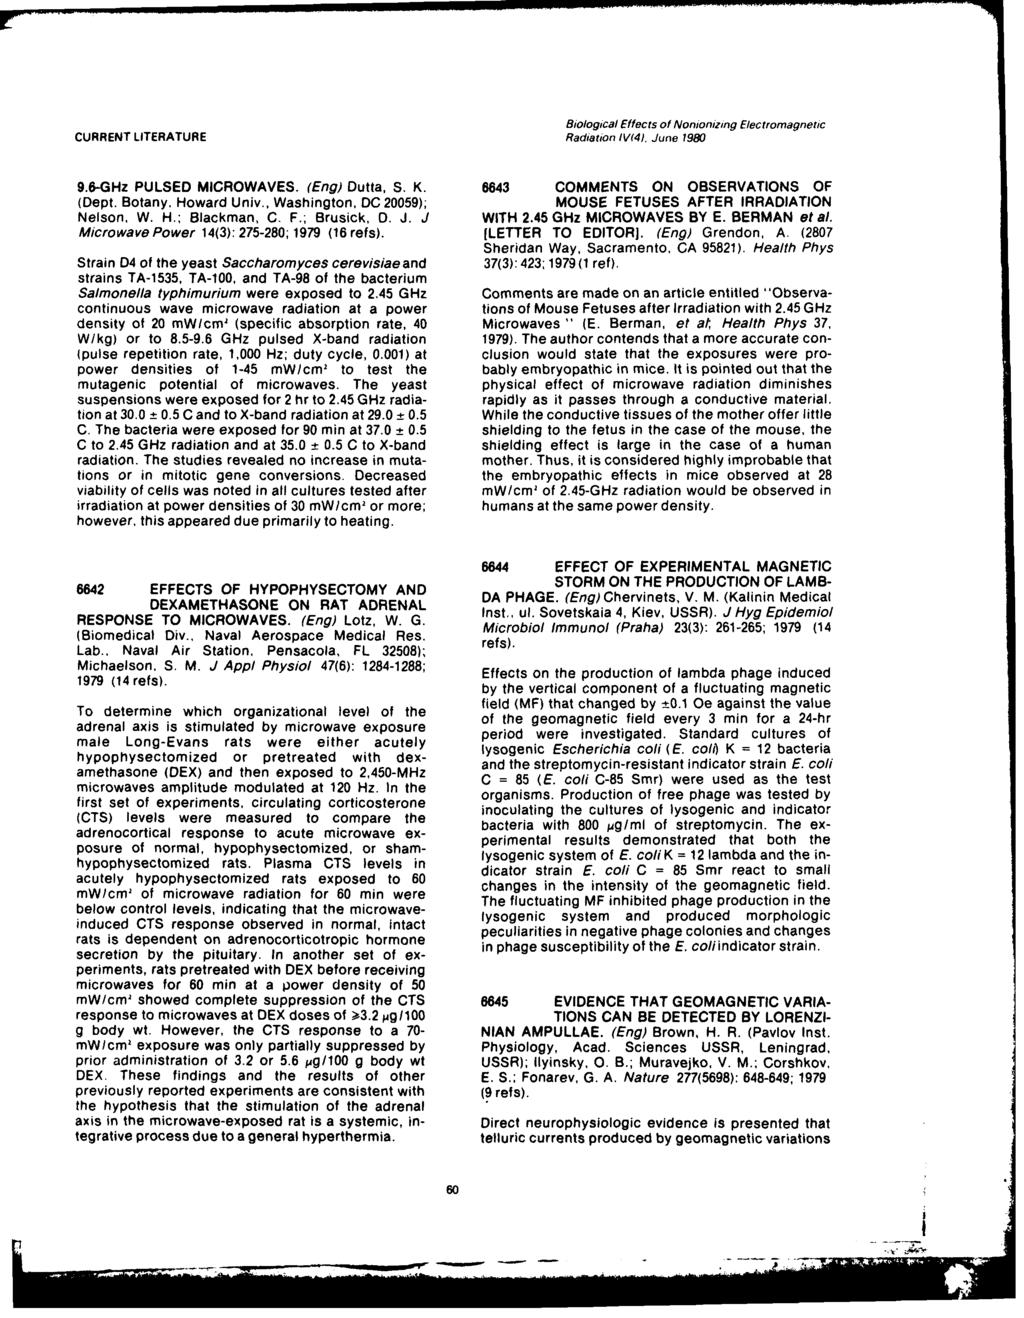 Unclassif71ed 80bc5003 Oi Vol 44n Pdf 20059 Hopkins Wiring Diagram Biological Effects Of Nonjonizing Electromagnetic Current Literature Radiation Ivm4 June 1980 96 Ghz